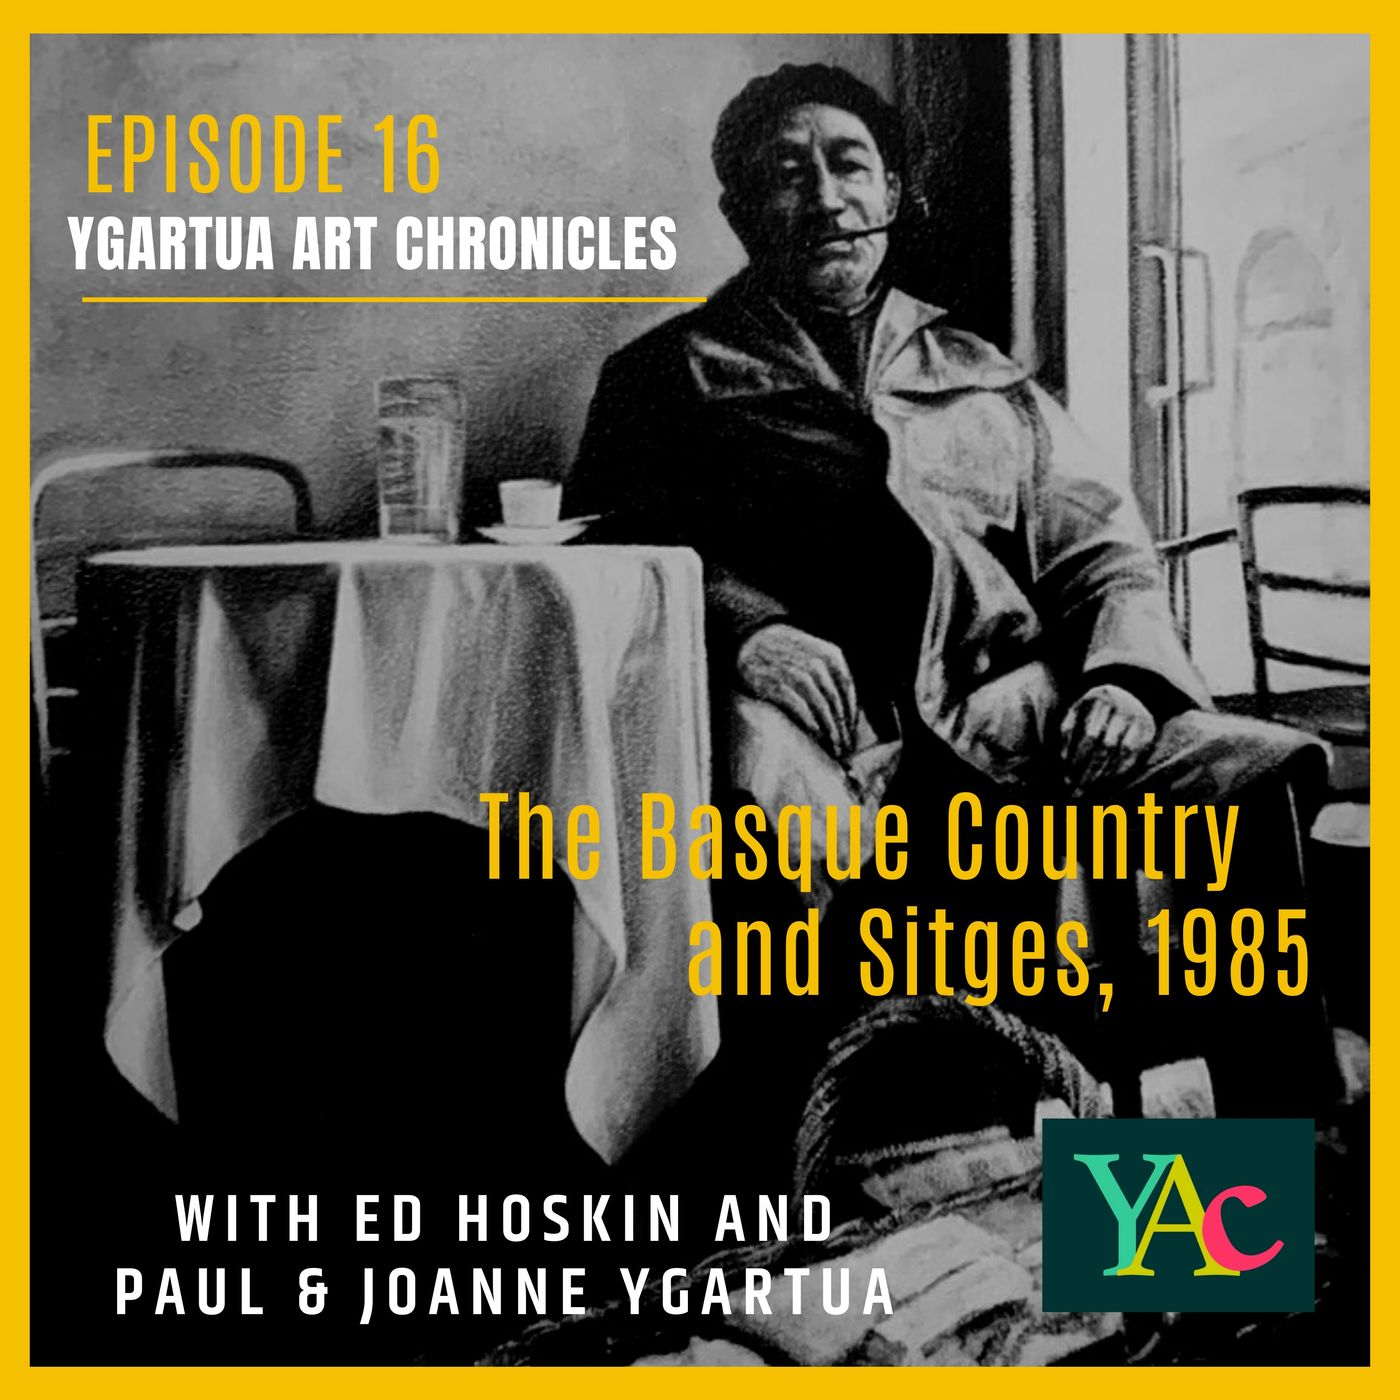 Ep16: Life in the Basque Country and Sitges, 1985